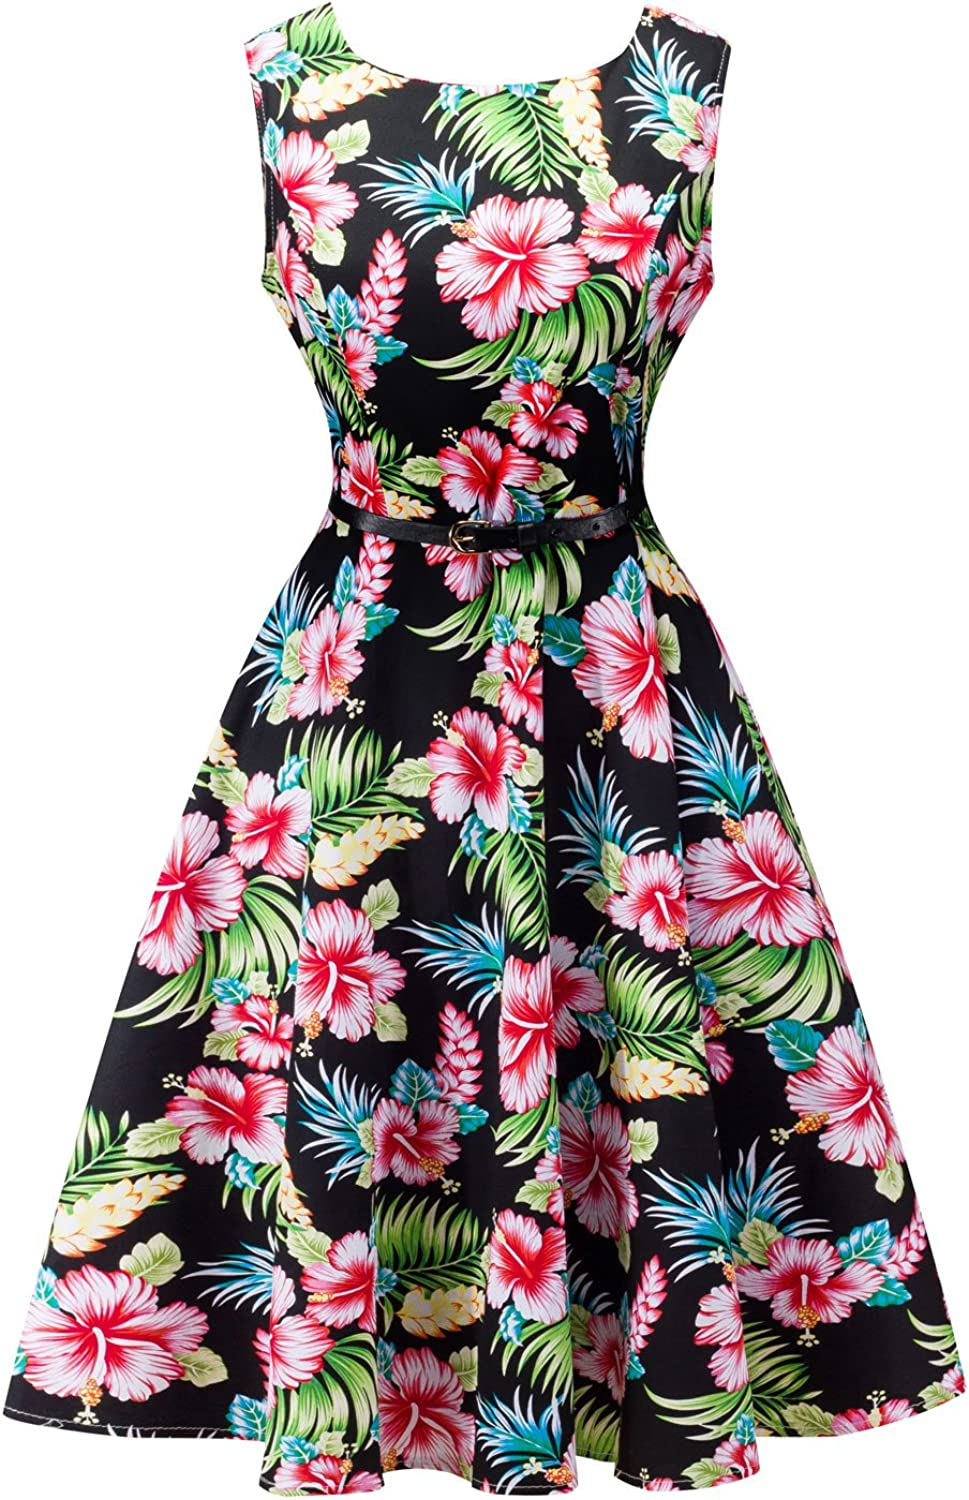 Lentta Women's Summer Knee Length Sleeveless Floral Pleated Hawaii Party Dress